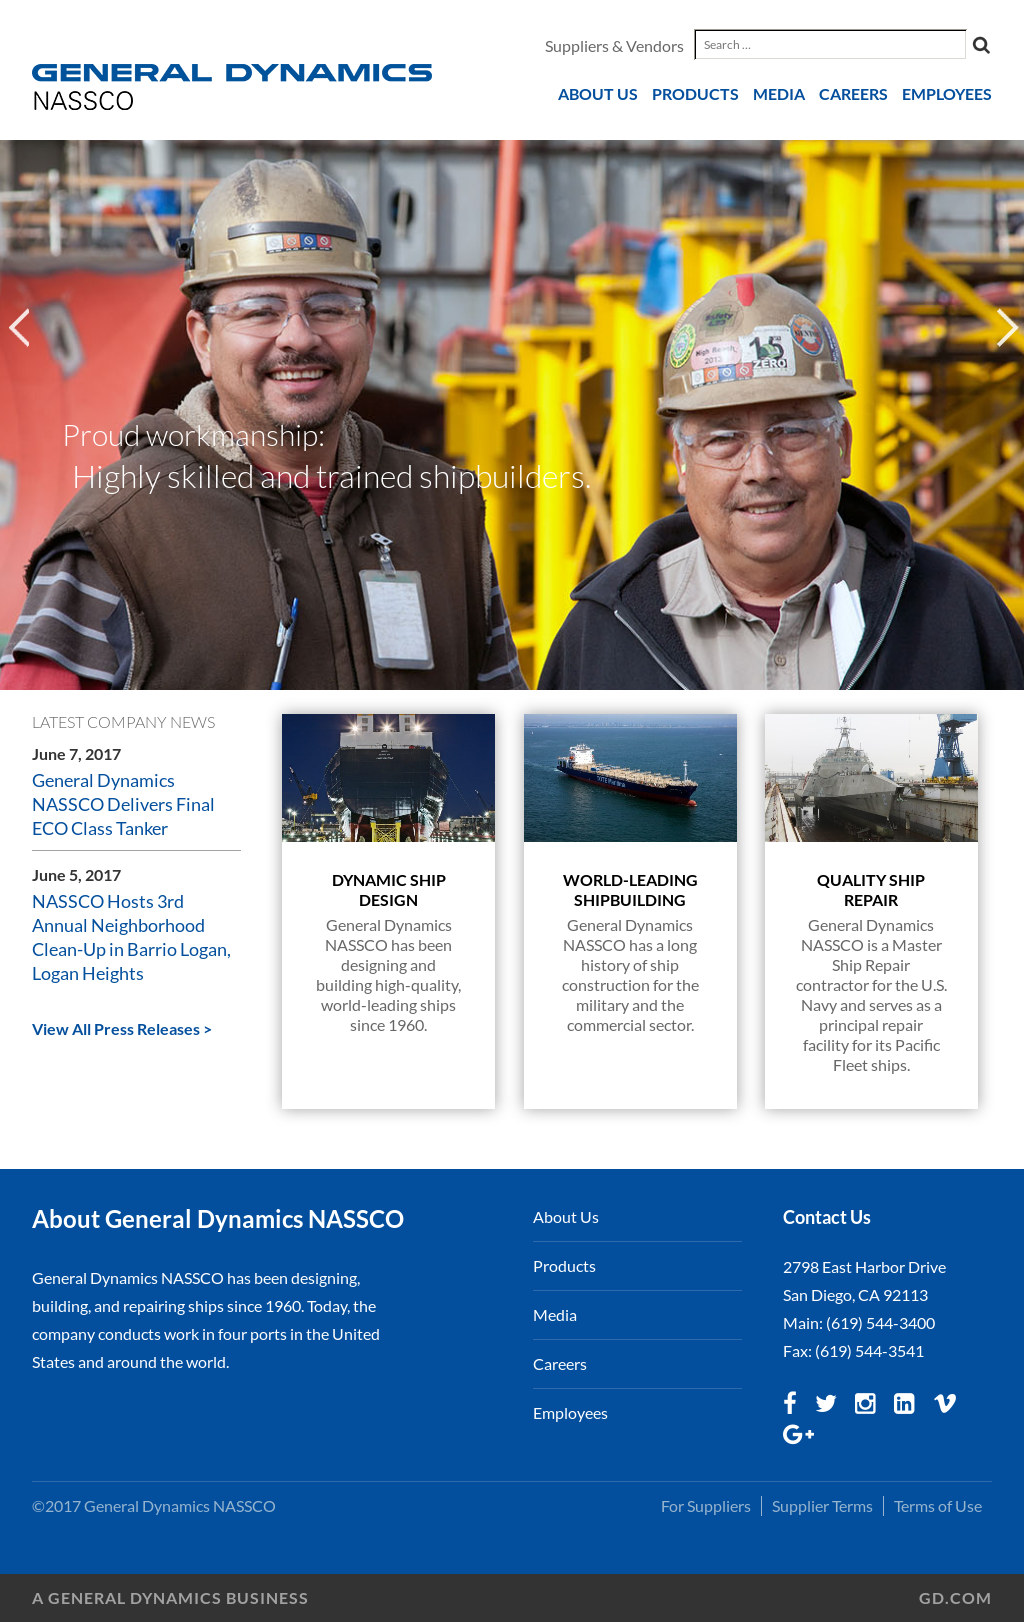 Nassco Competitors, Revenue and Employees - Owler Company